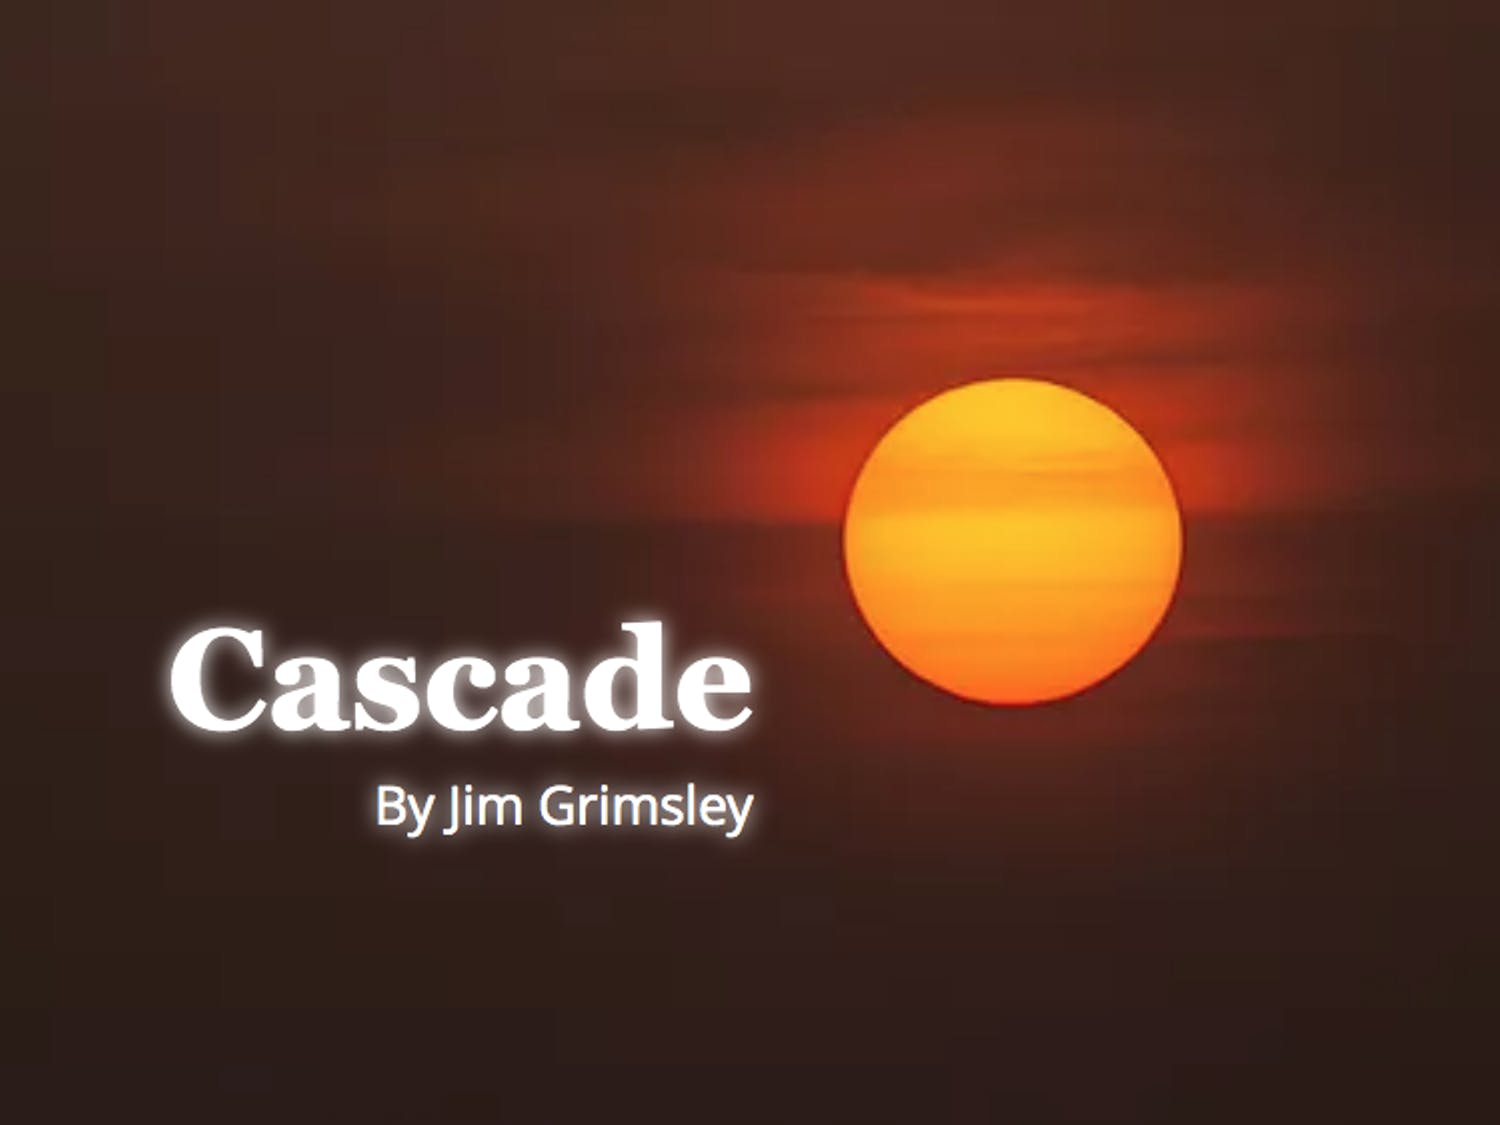 """The UNC Process Series will virtually present a reading of """"Cascade,"""" a play about the climate crisis written by UNC alumnus Jim Grimsley, on April 16 and 17. Photo courtesy of Joseph Megel."""